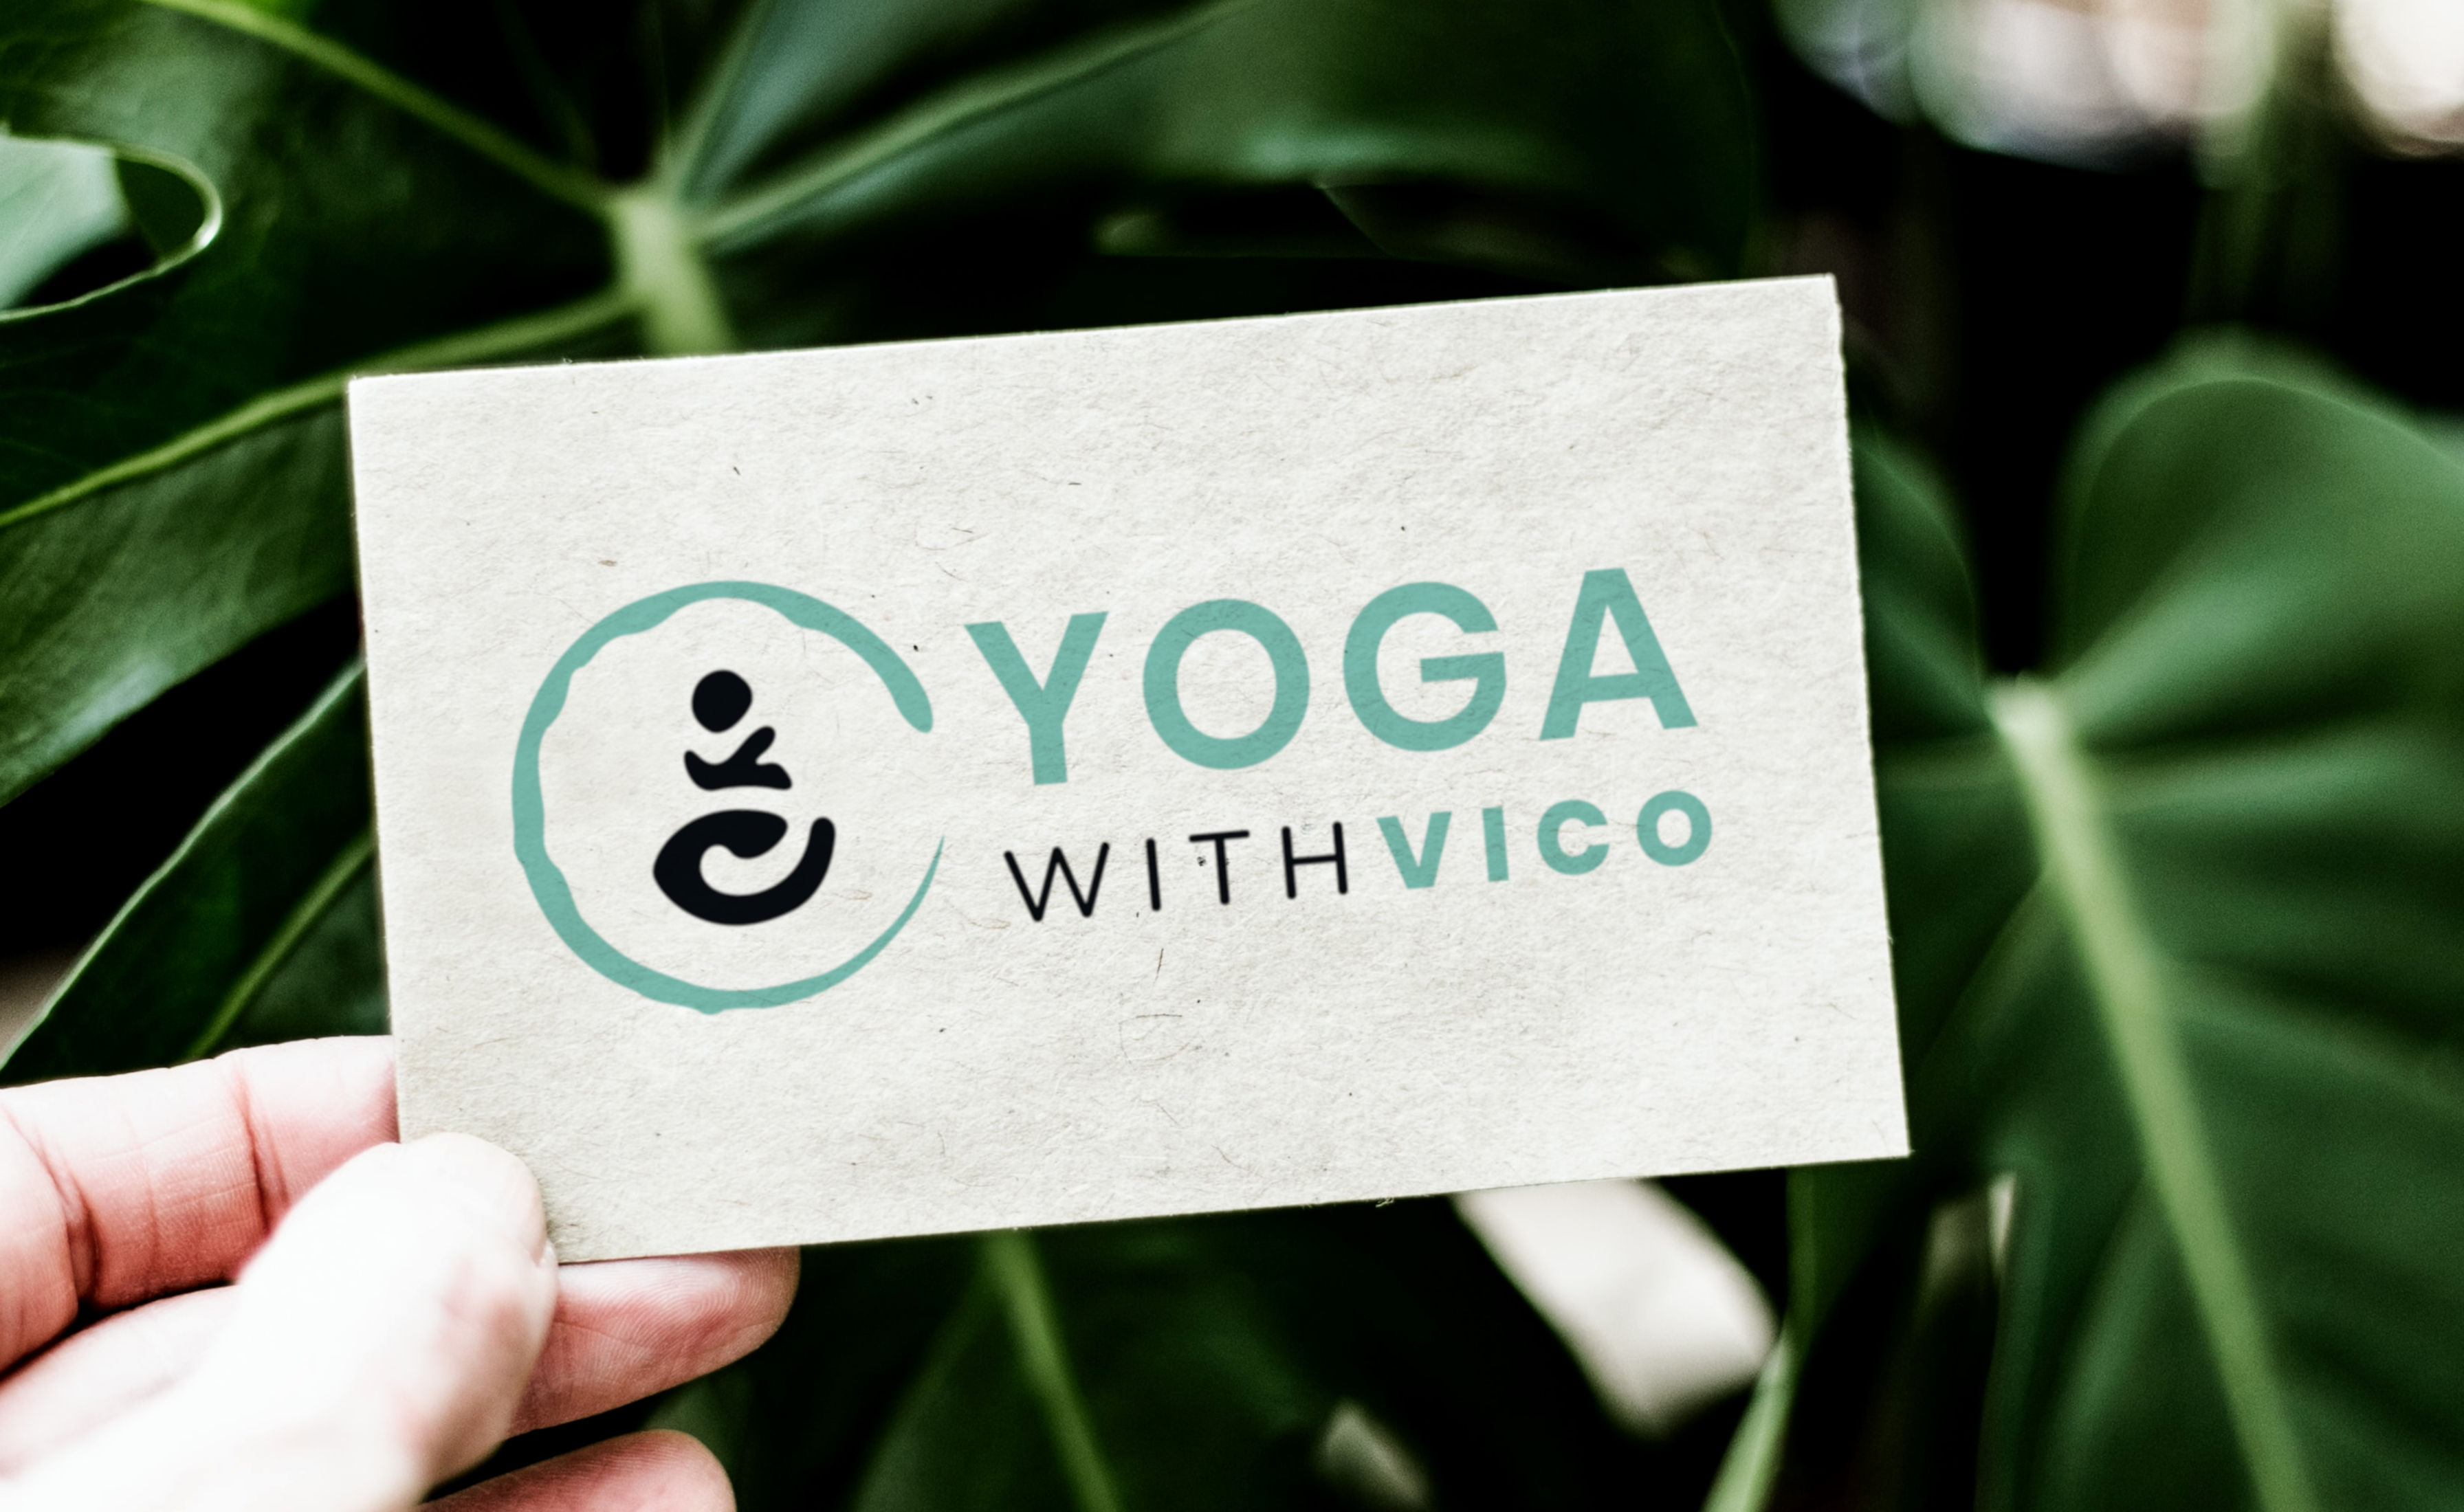 Yoga with Vico's rectangular logo design shown on a business card made from recycled paper. The card is held by a hand in front of green plant leaves.